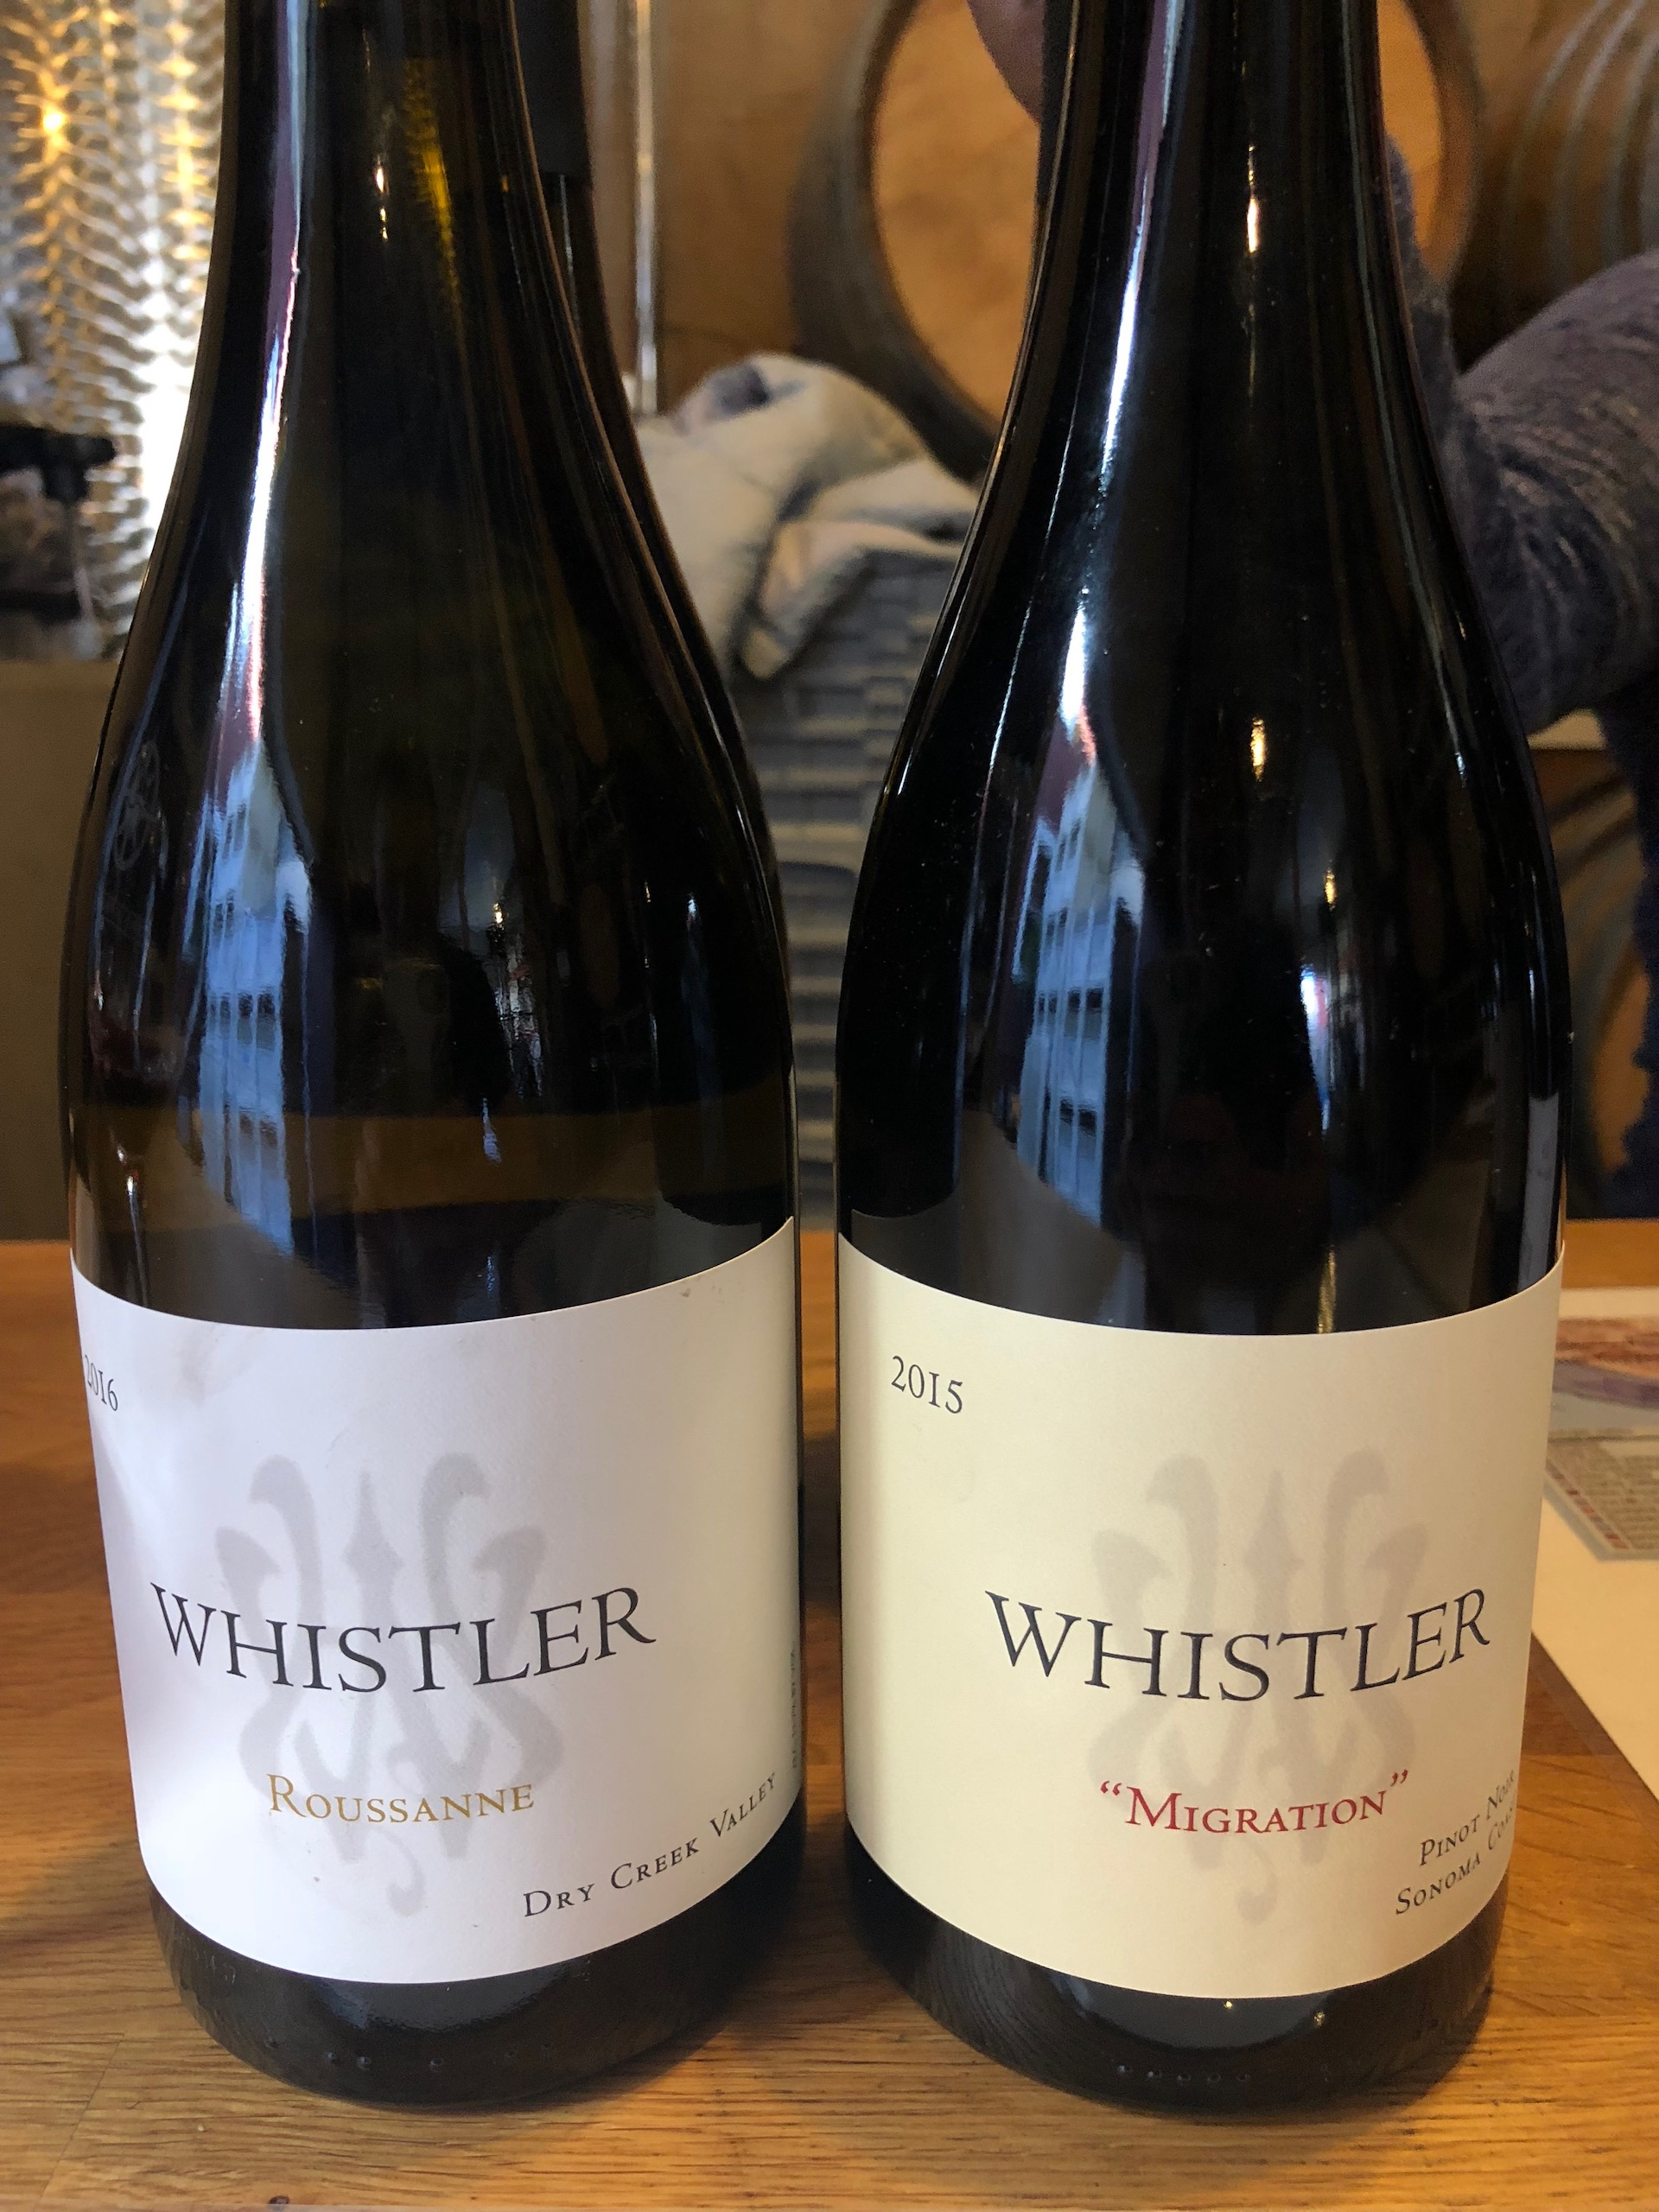 Whistler specializes in excellent estate Pinot Noir from the Sonoma Coast